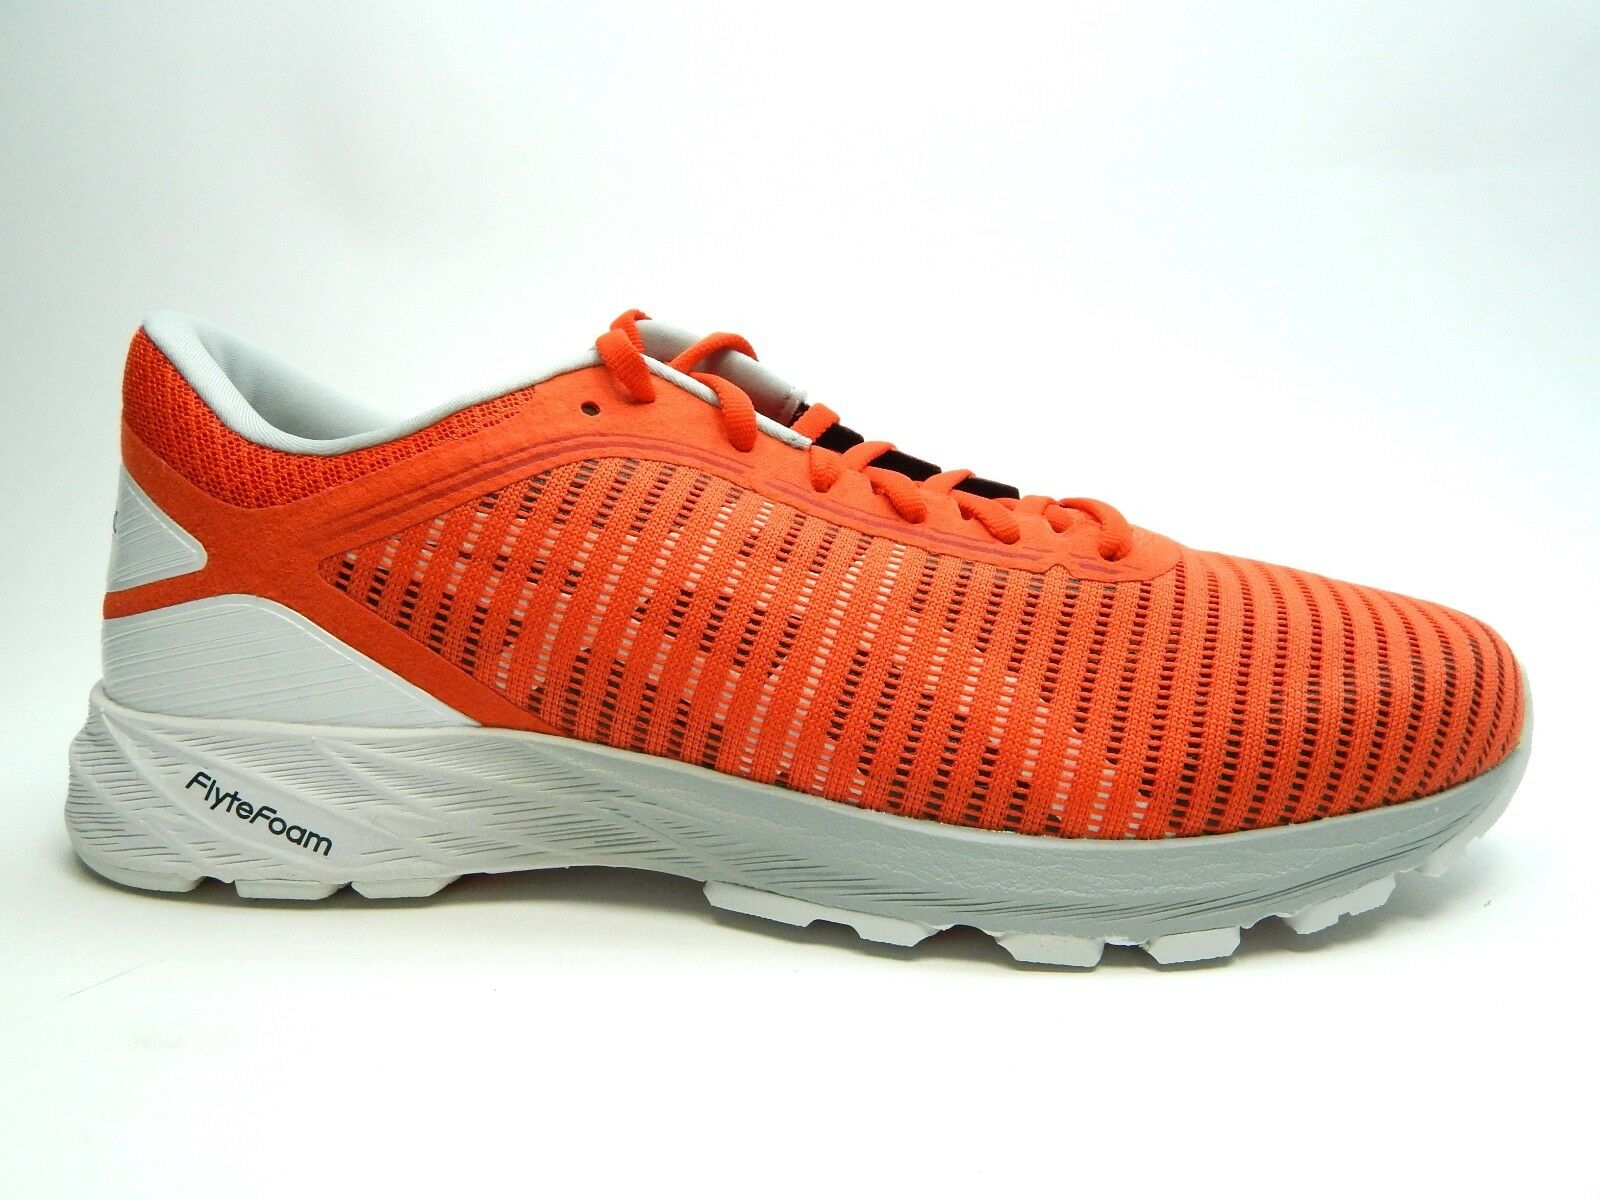 ASICS dynaflyte t7d0n Hombre 0601 tomate cherry Blanco Hombre t7d0n zapatos tamaño 6 a 12,5 793862